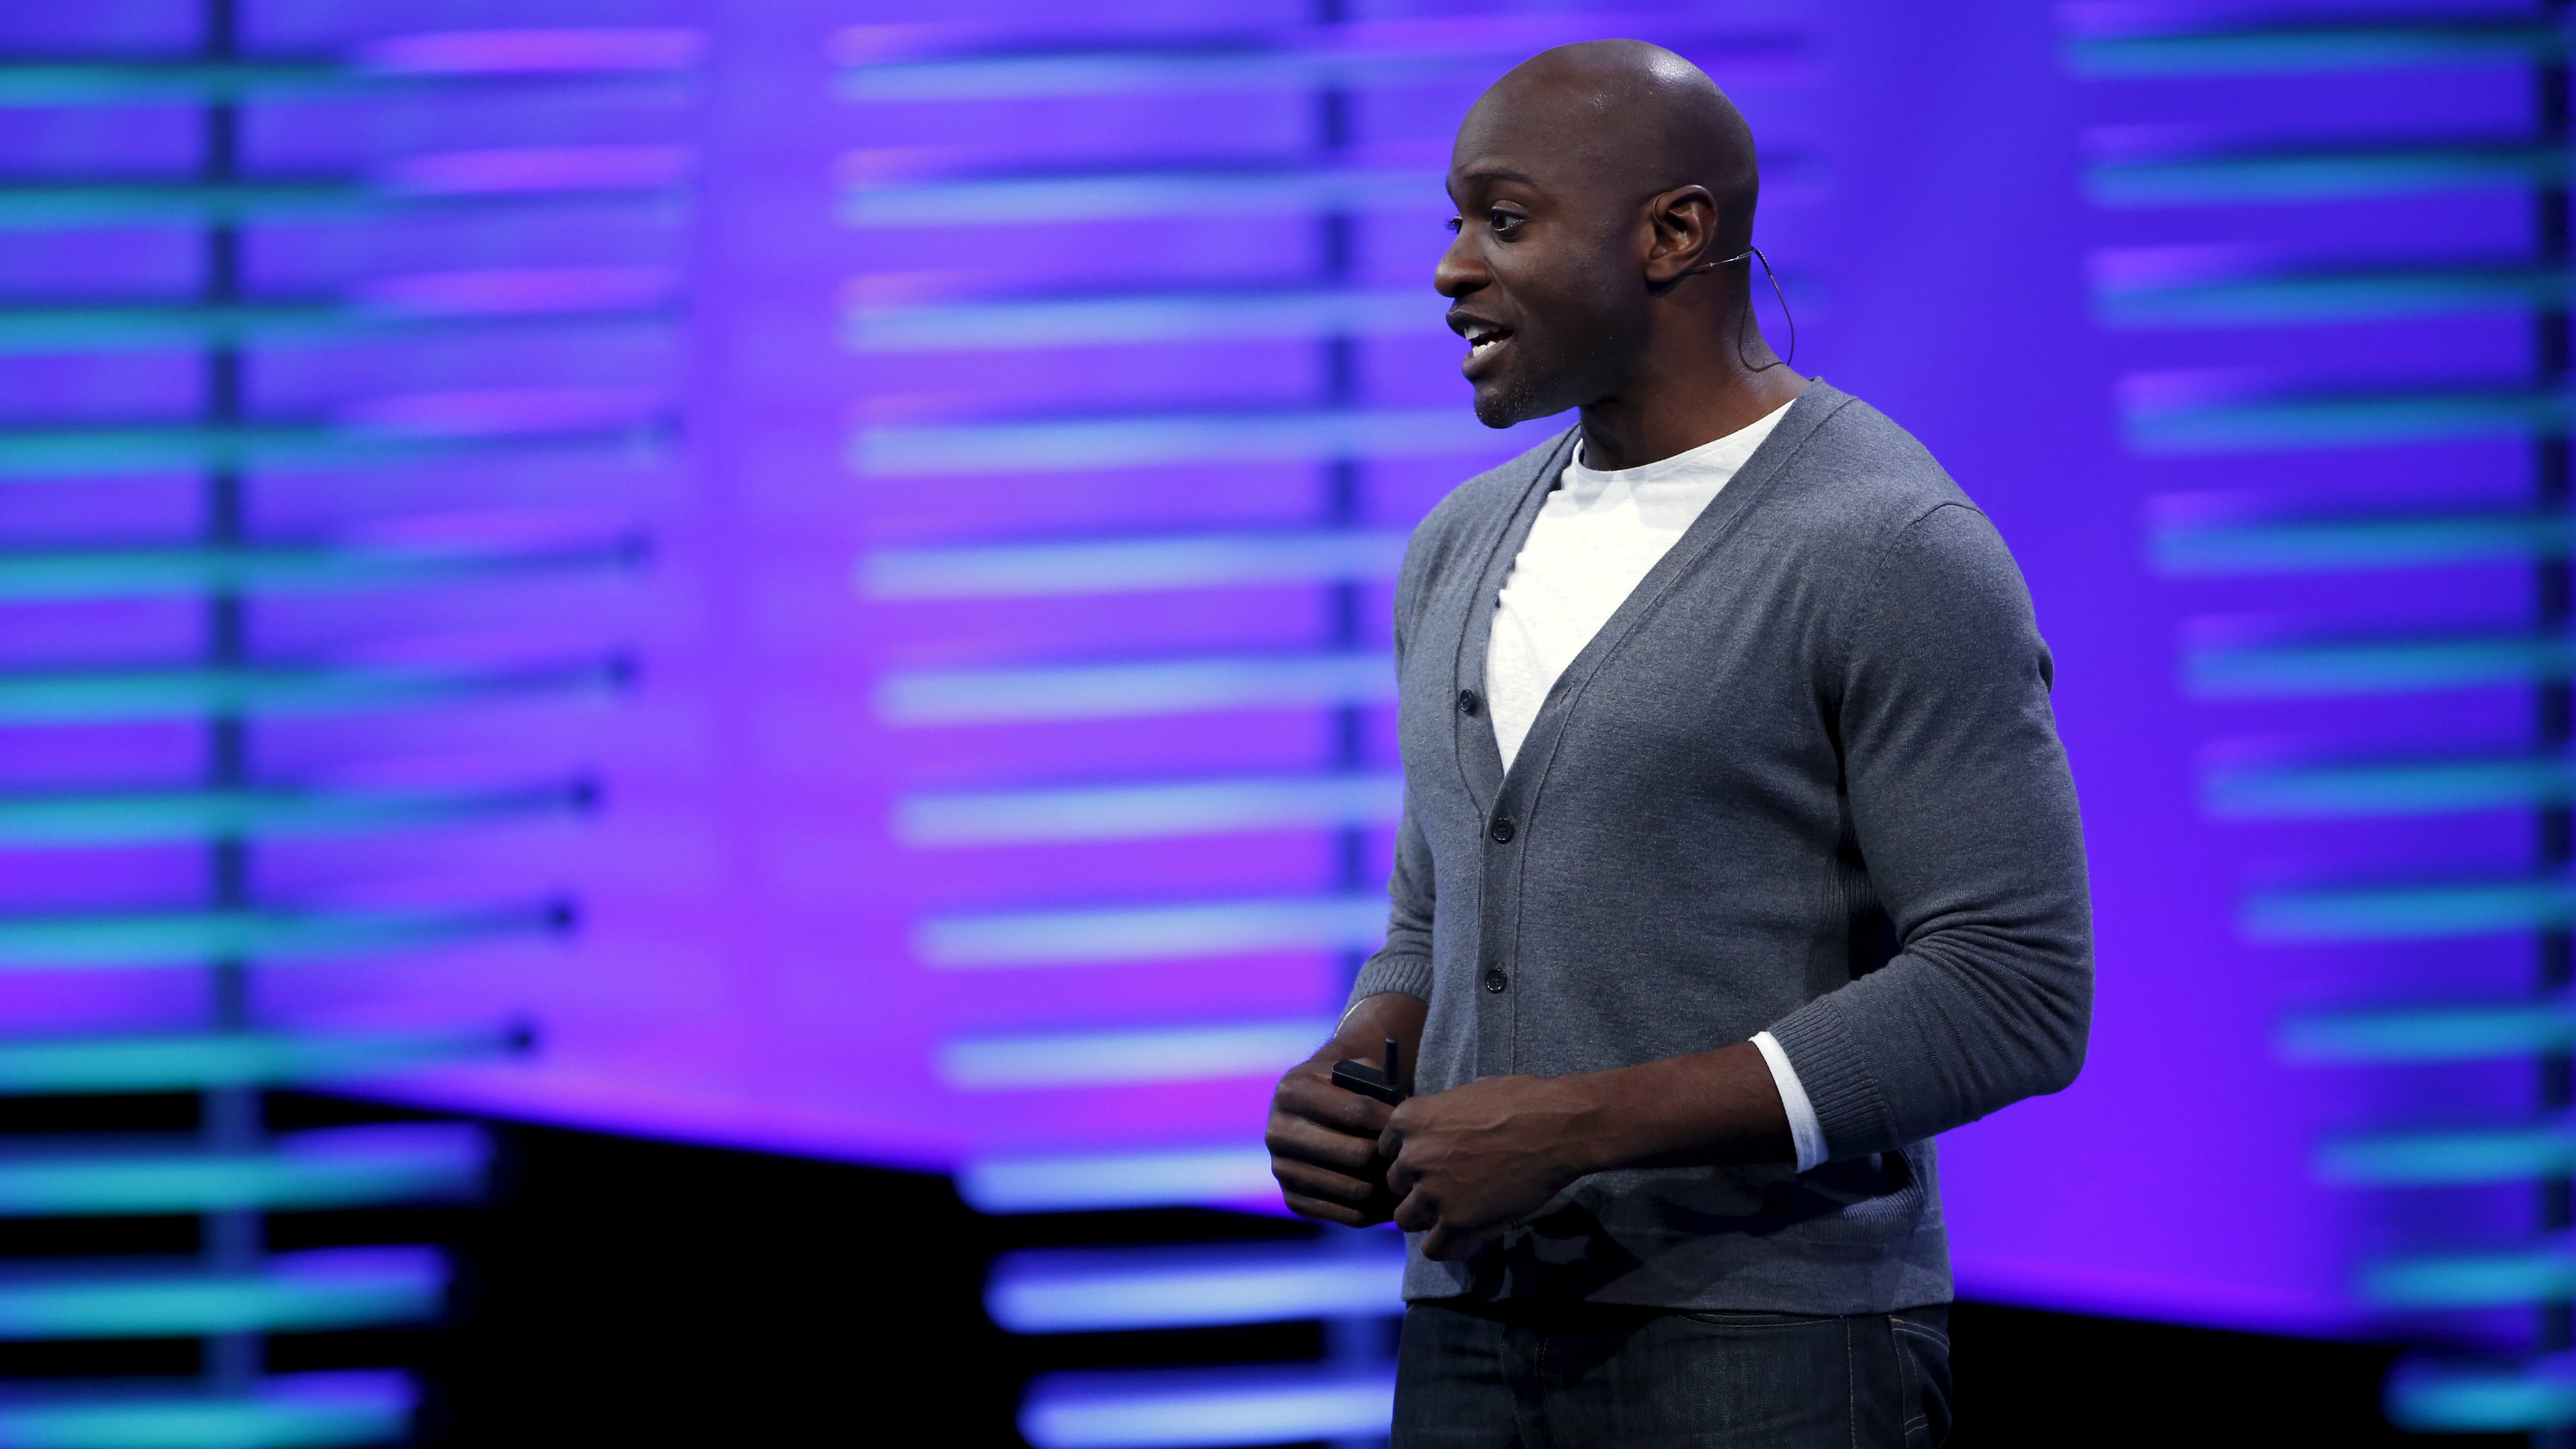 Ime Archibong, director of product partnerships at Facebook, speaks on stage during the Facebook F8 conference in San Francisco, California April 12, 2016.